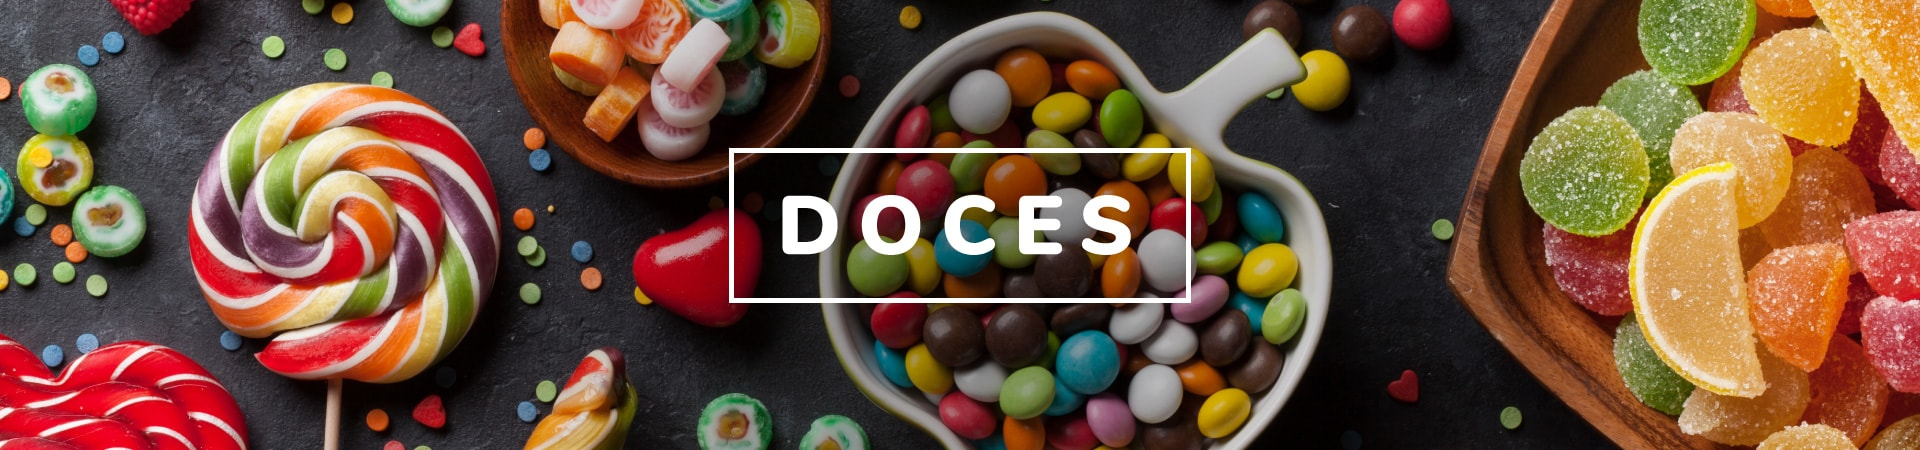 Kids Doces